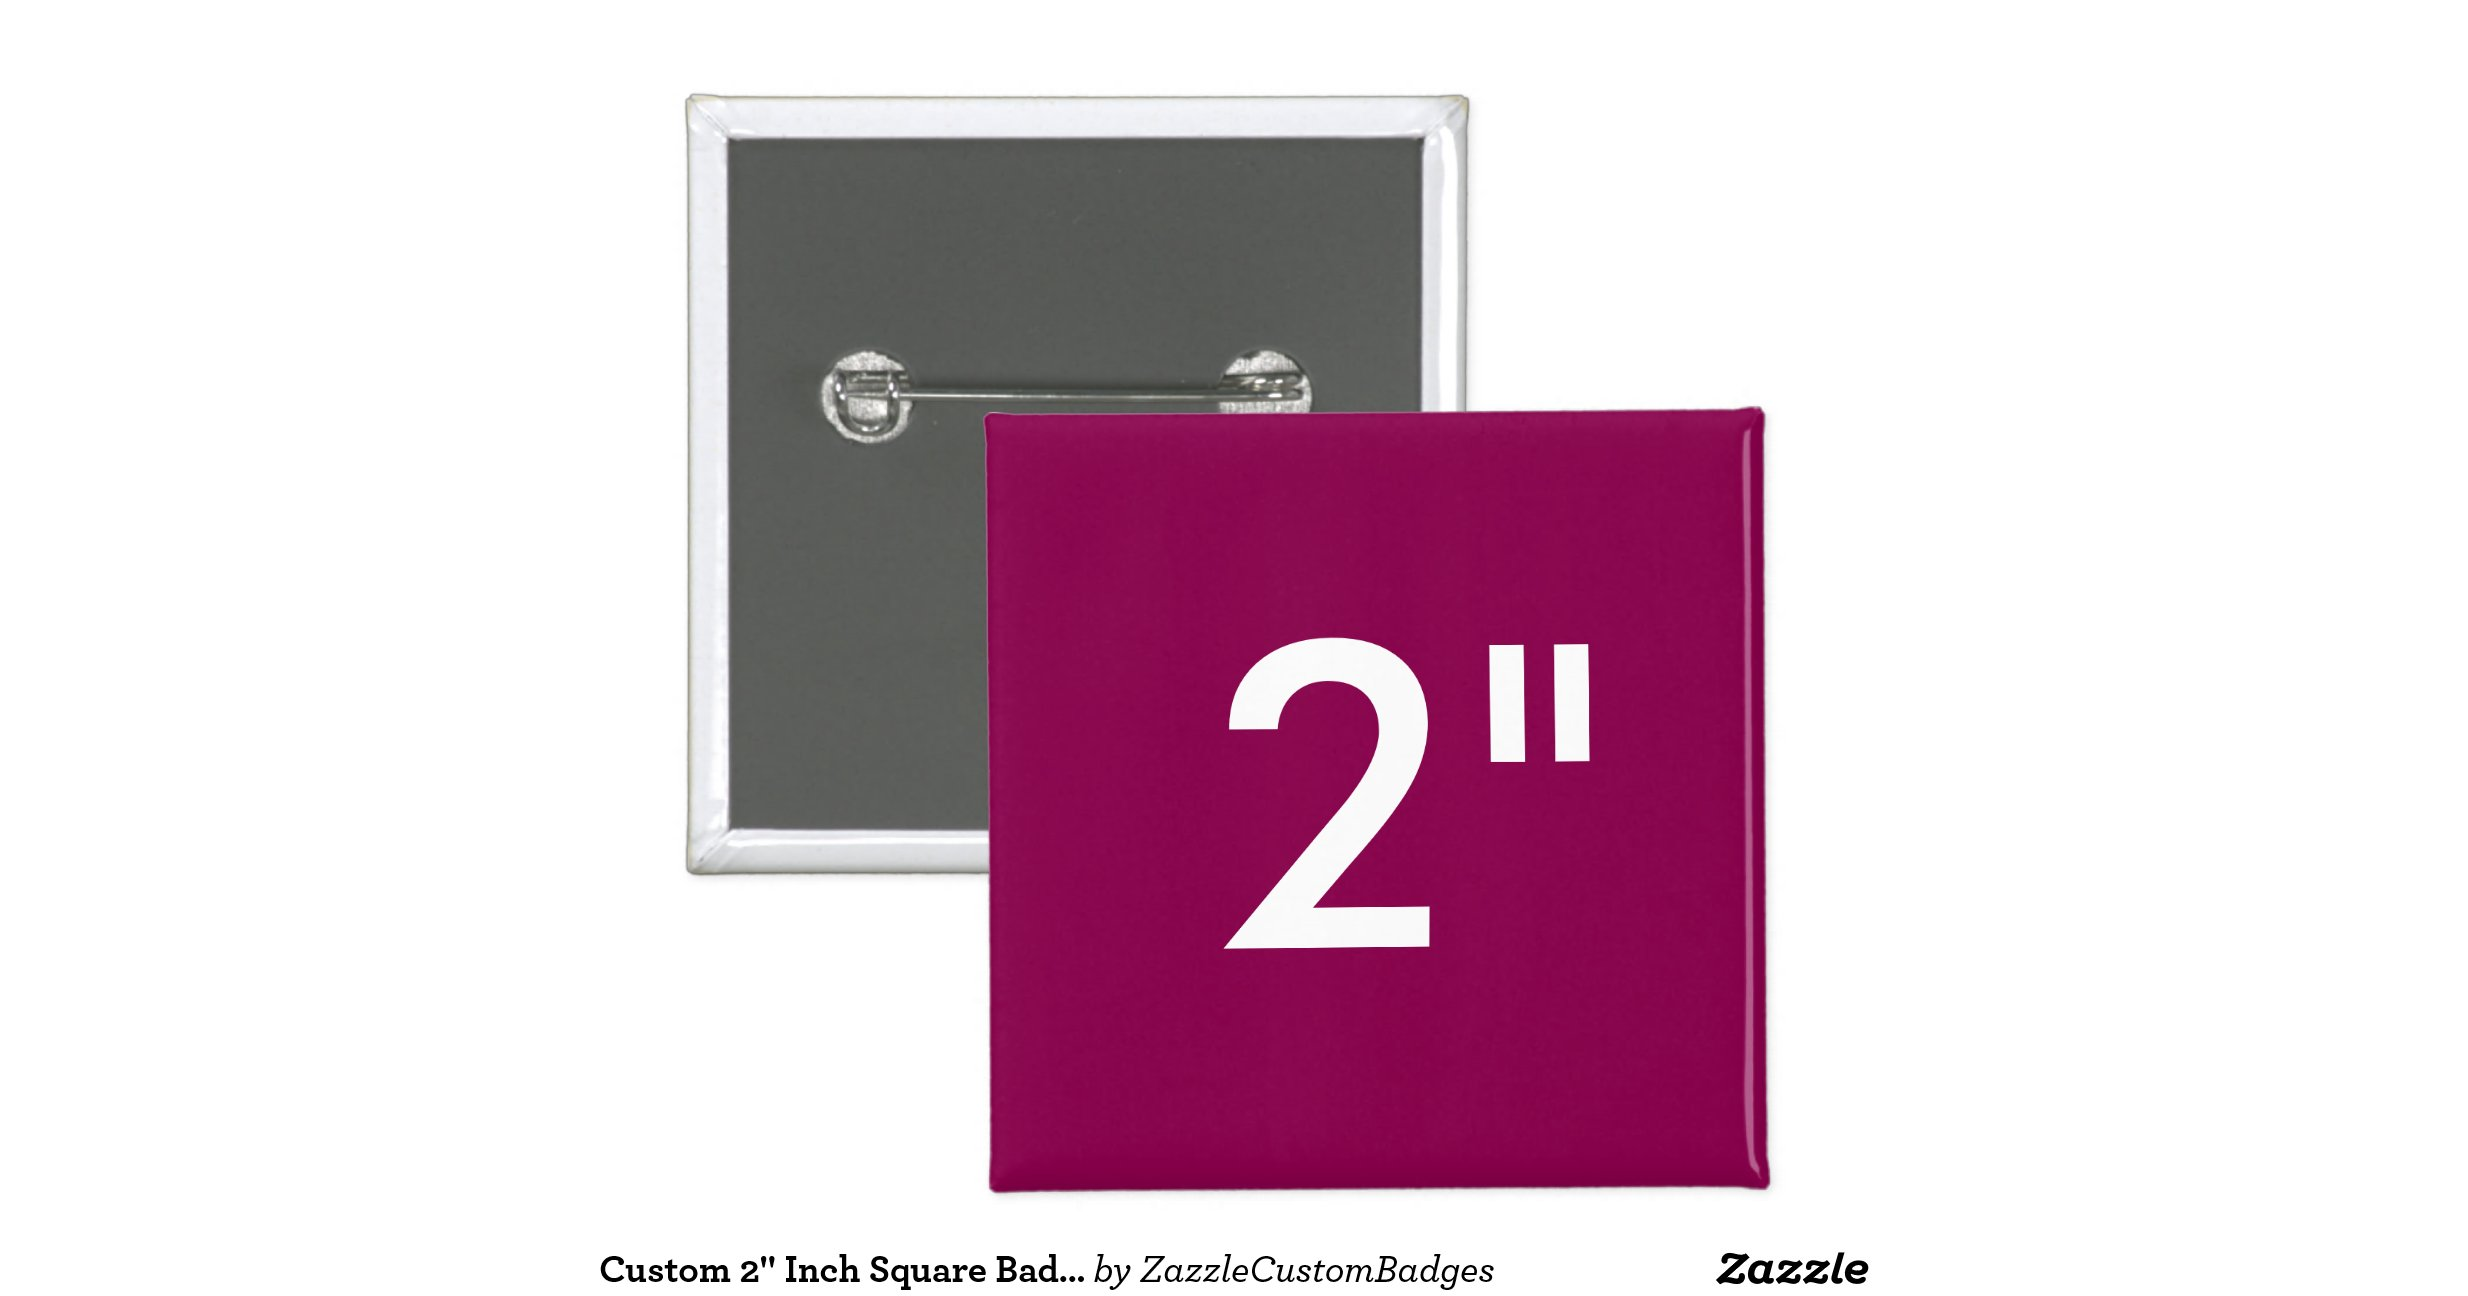 custom 2 inch square badge blank template plum 2 inch square button zazzle. Black Bedroom Furniture Sets. Home Design Ideas